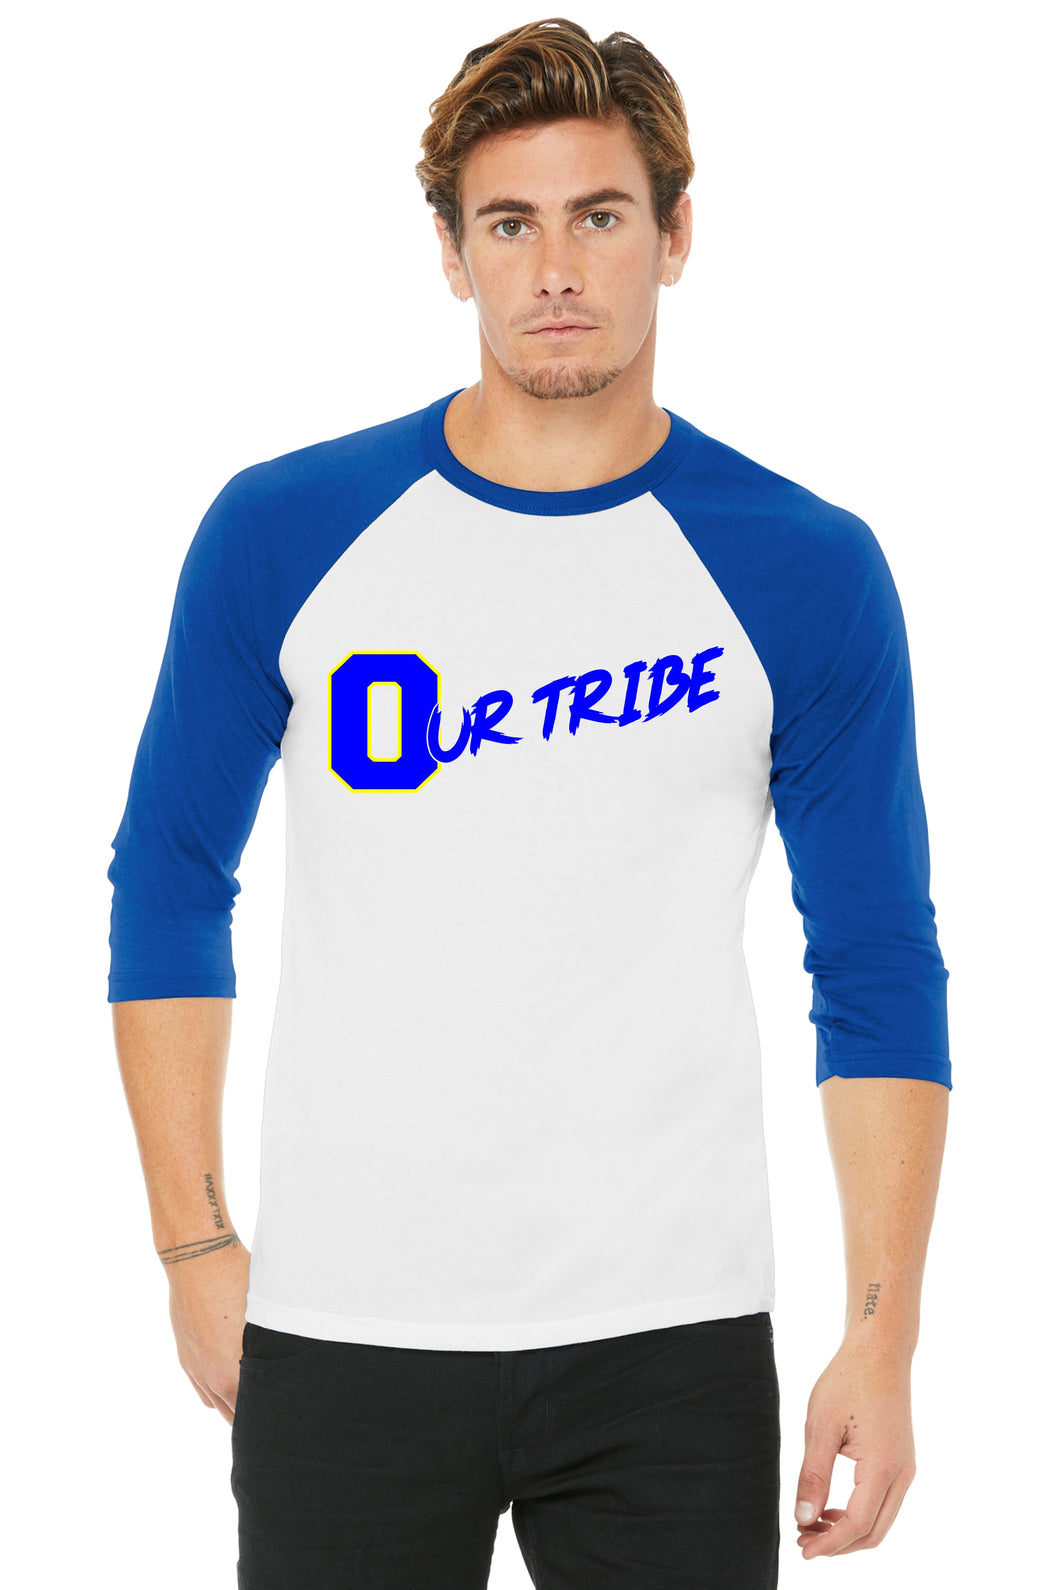 Our Tribe White and Blue Unisex